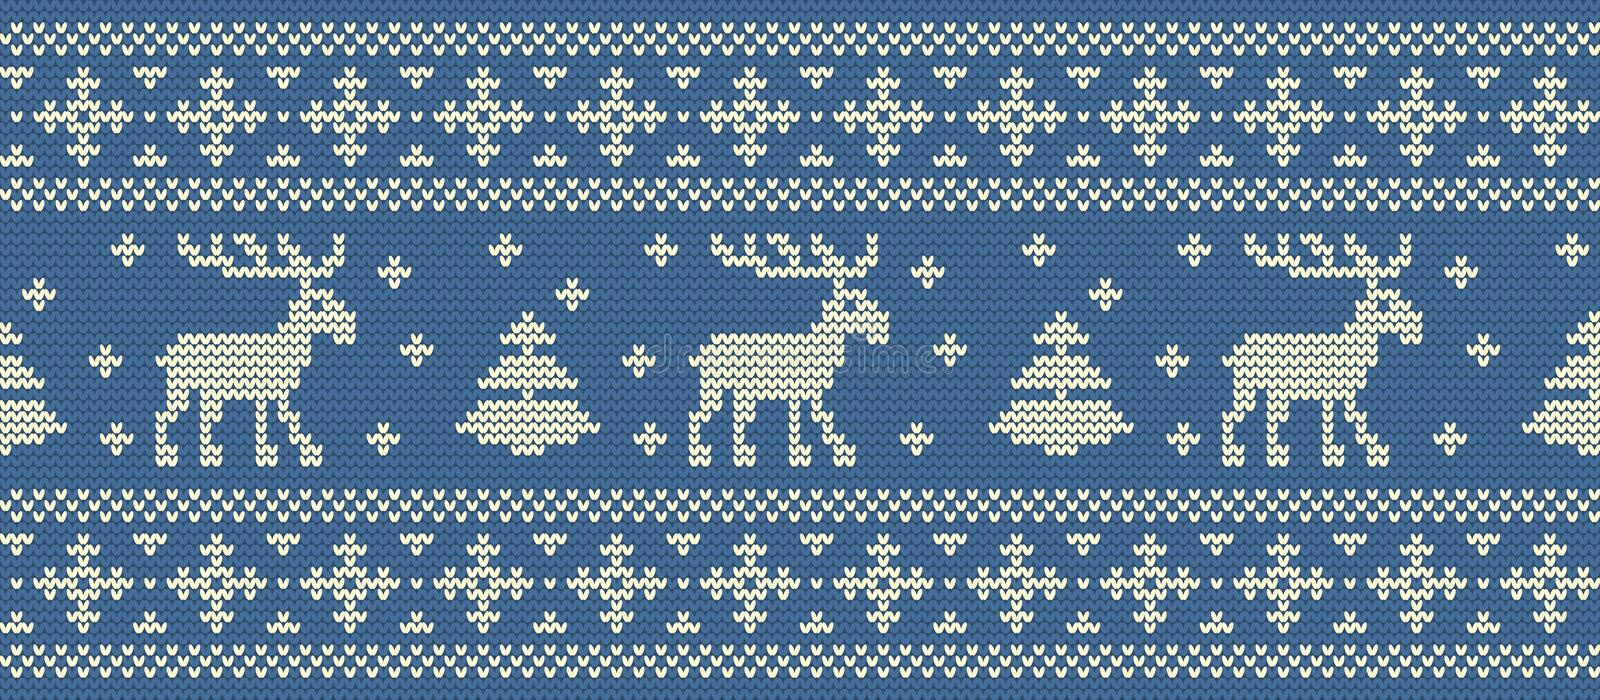 Christmas background. Knitted pattern with deers and fir trees. Seamless border royalty free illustration